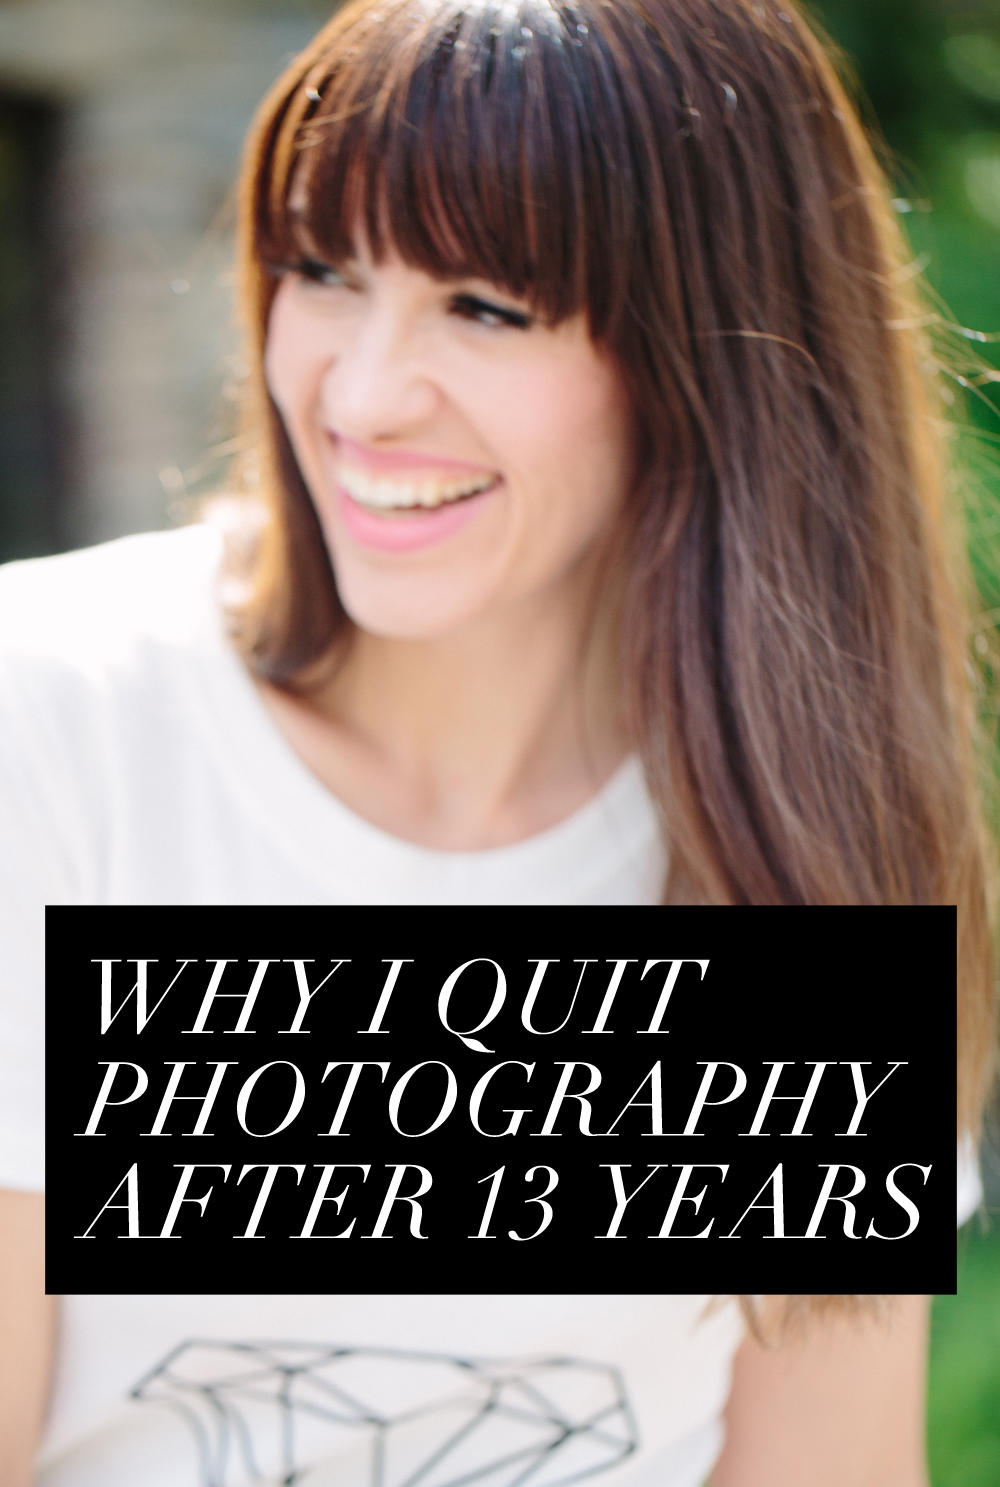 quitphotography